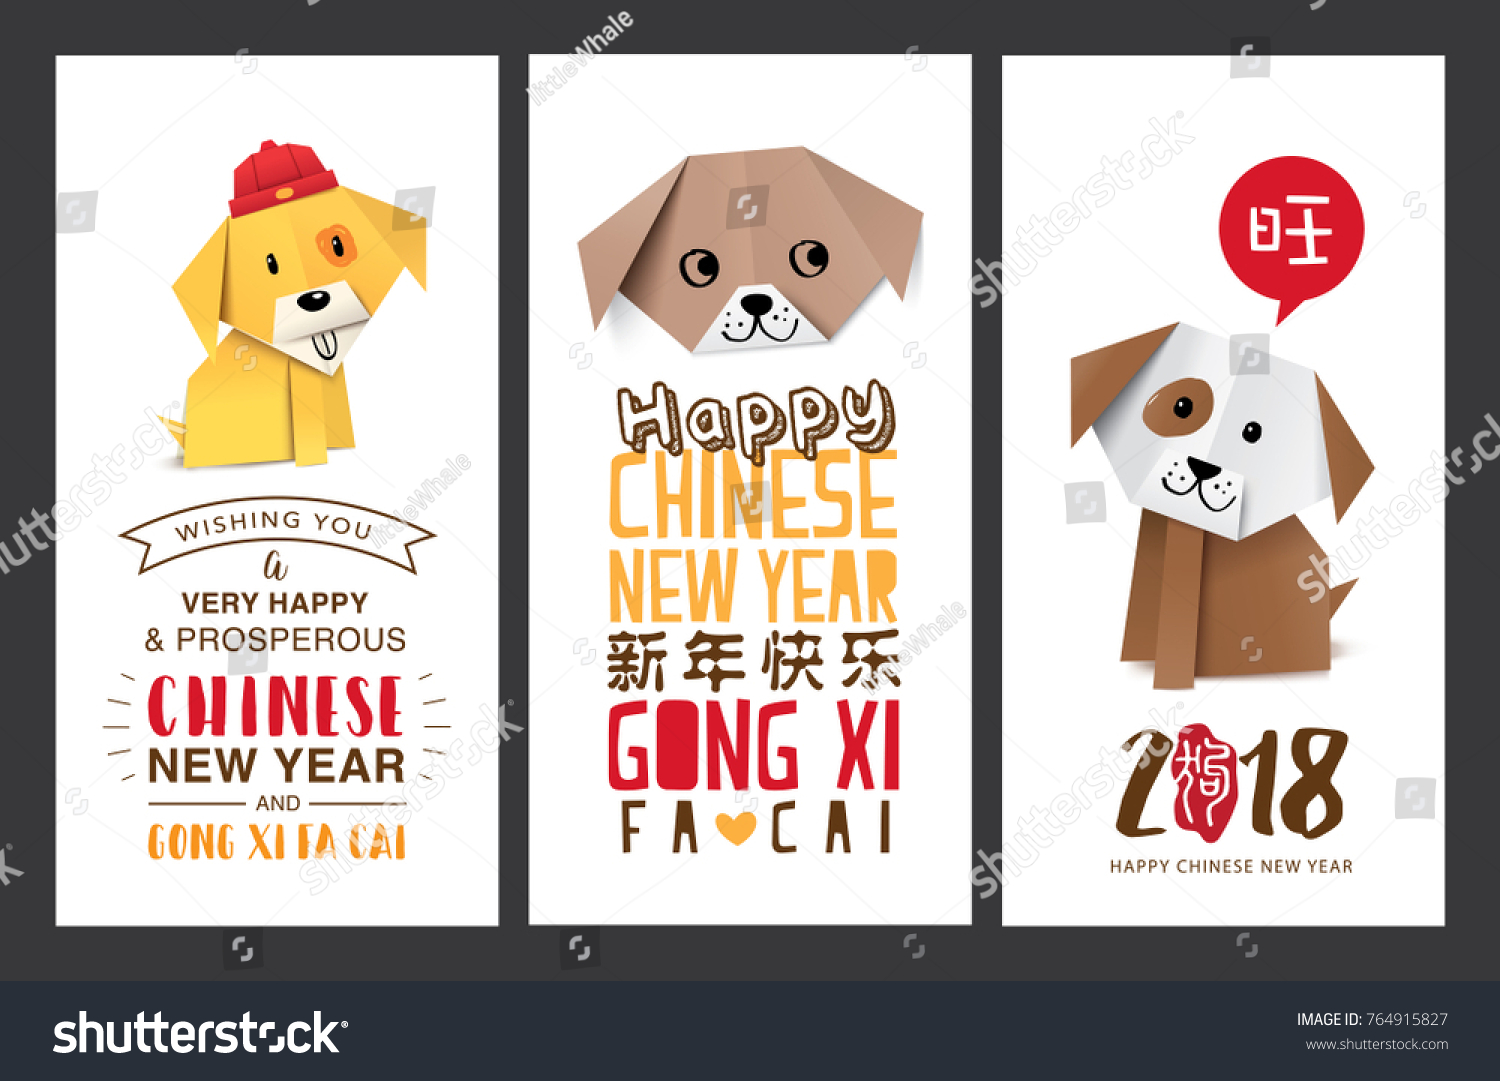 Set Chinese New Year Cards 2018 Stock-Vektorgrafik (Lizenzfrei ...